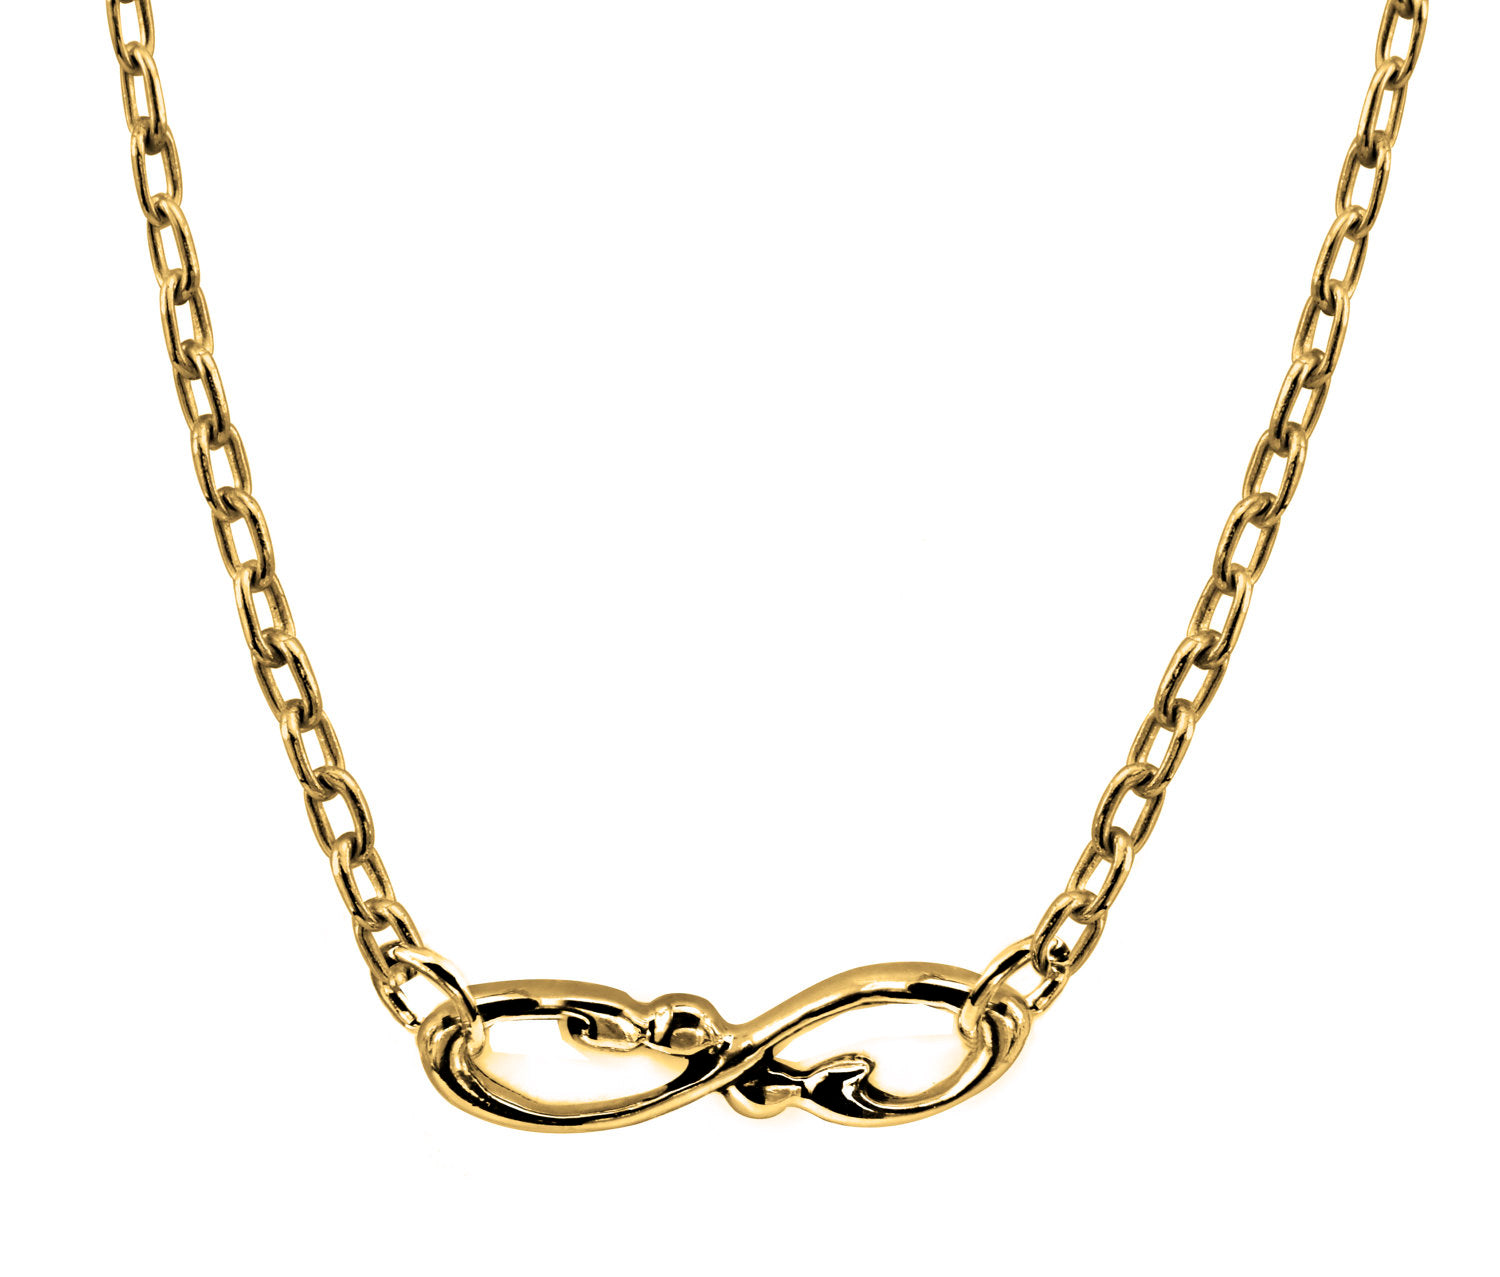 14k Yellow Gold infinity necklace